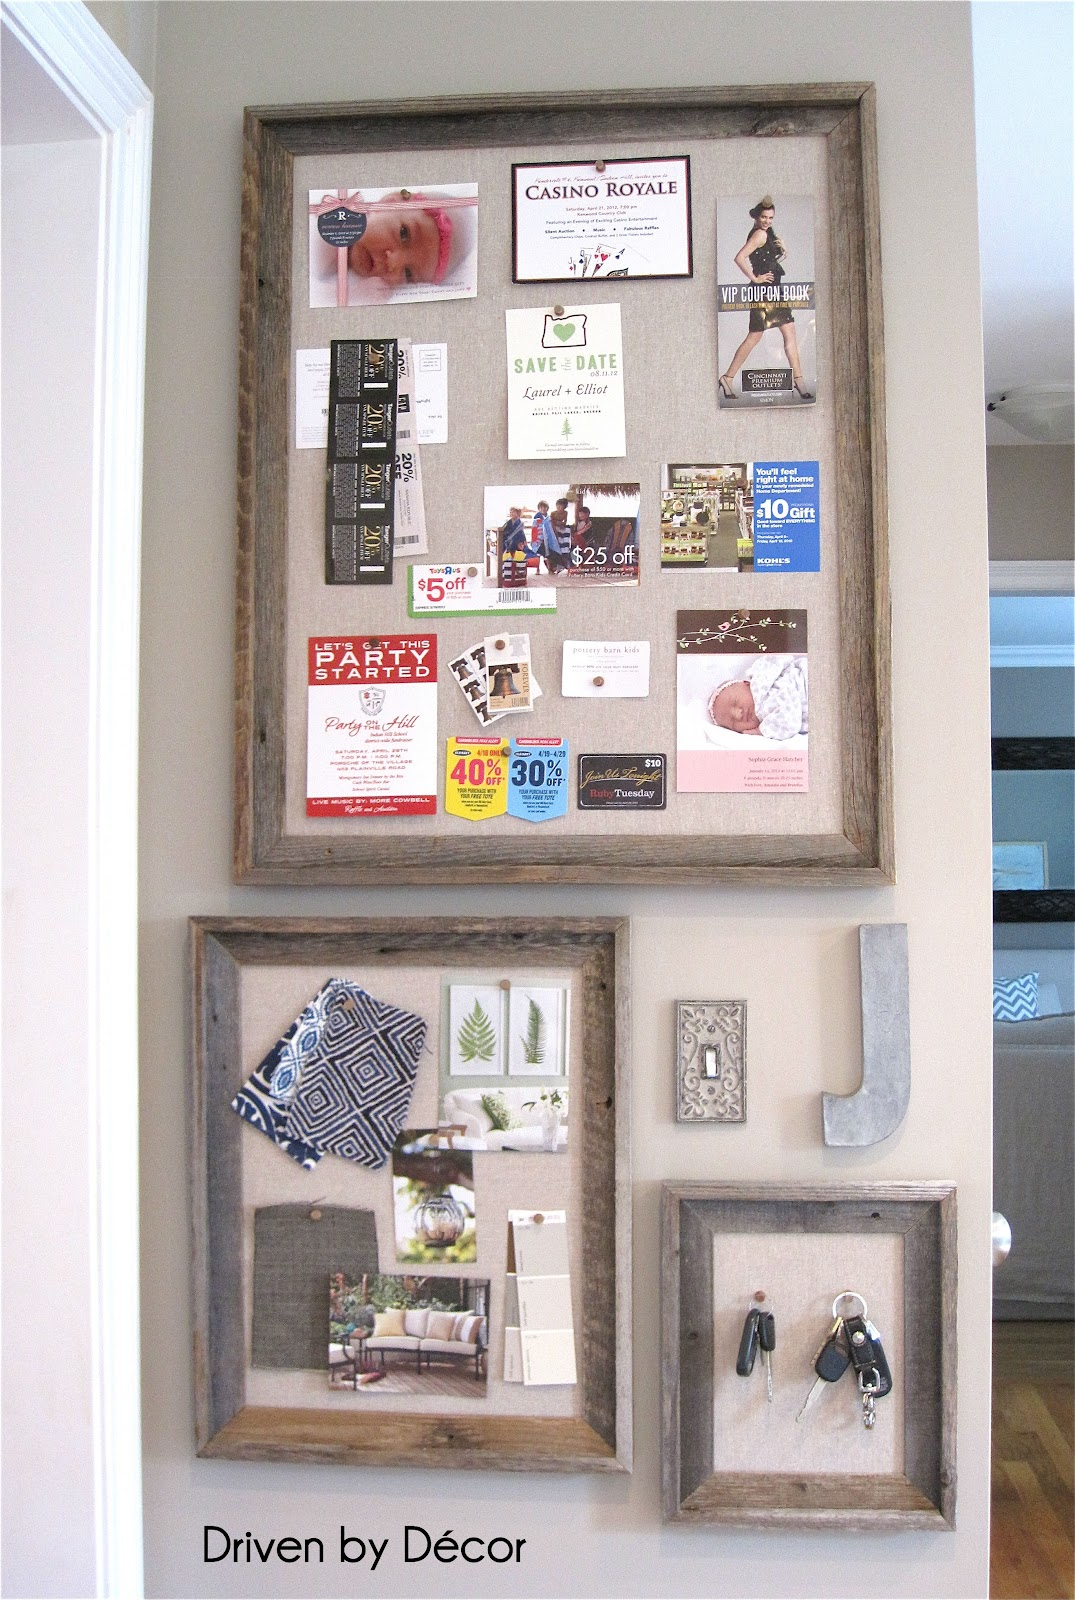 Girl teen cork board absolutely stunning!